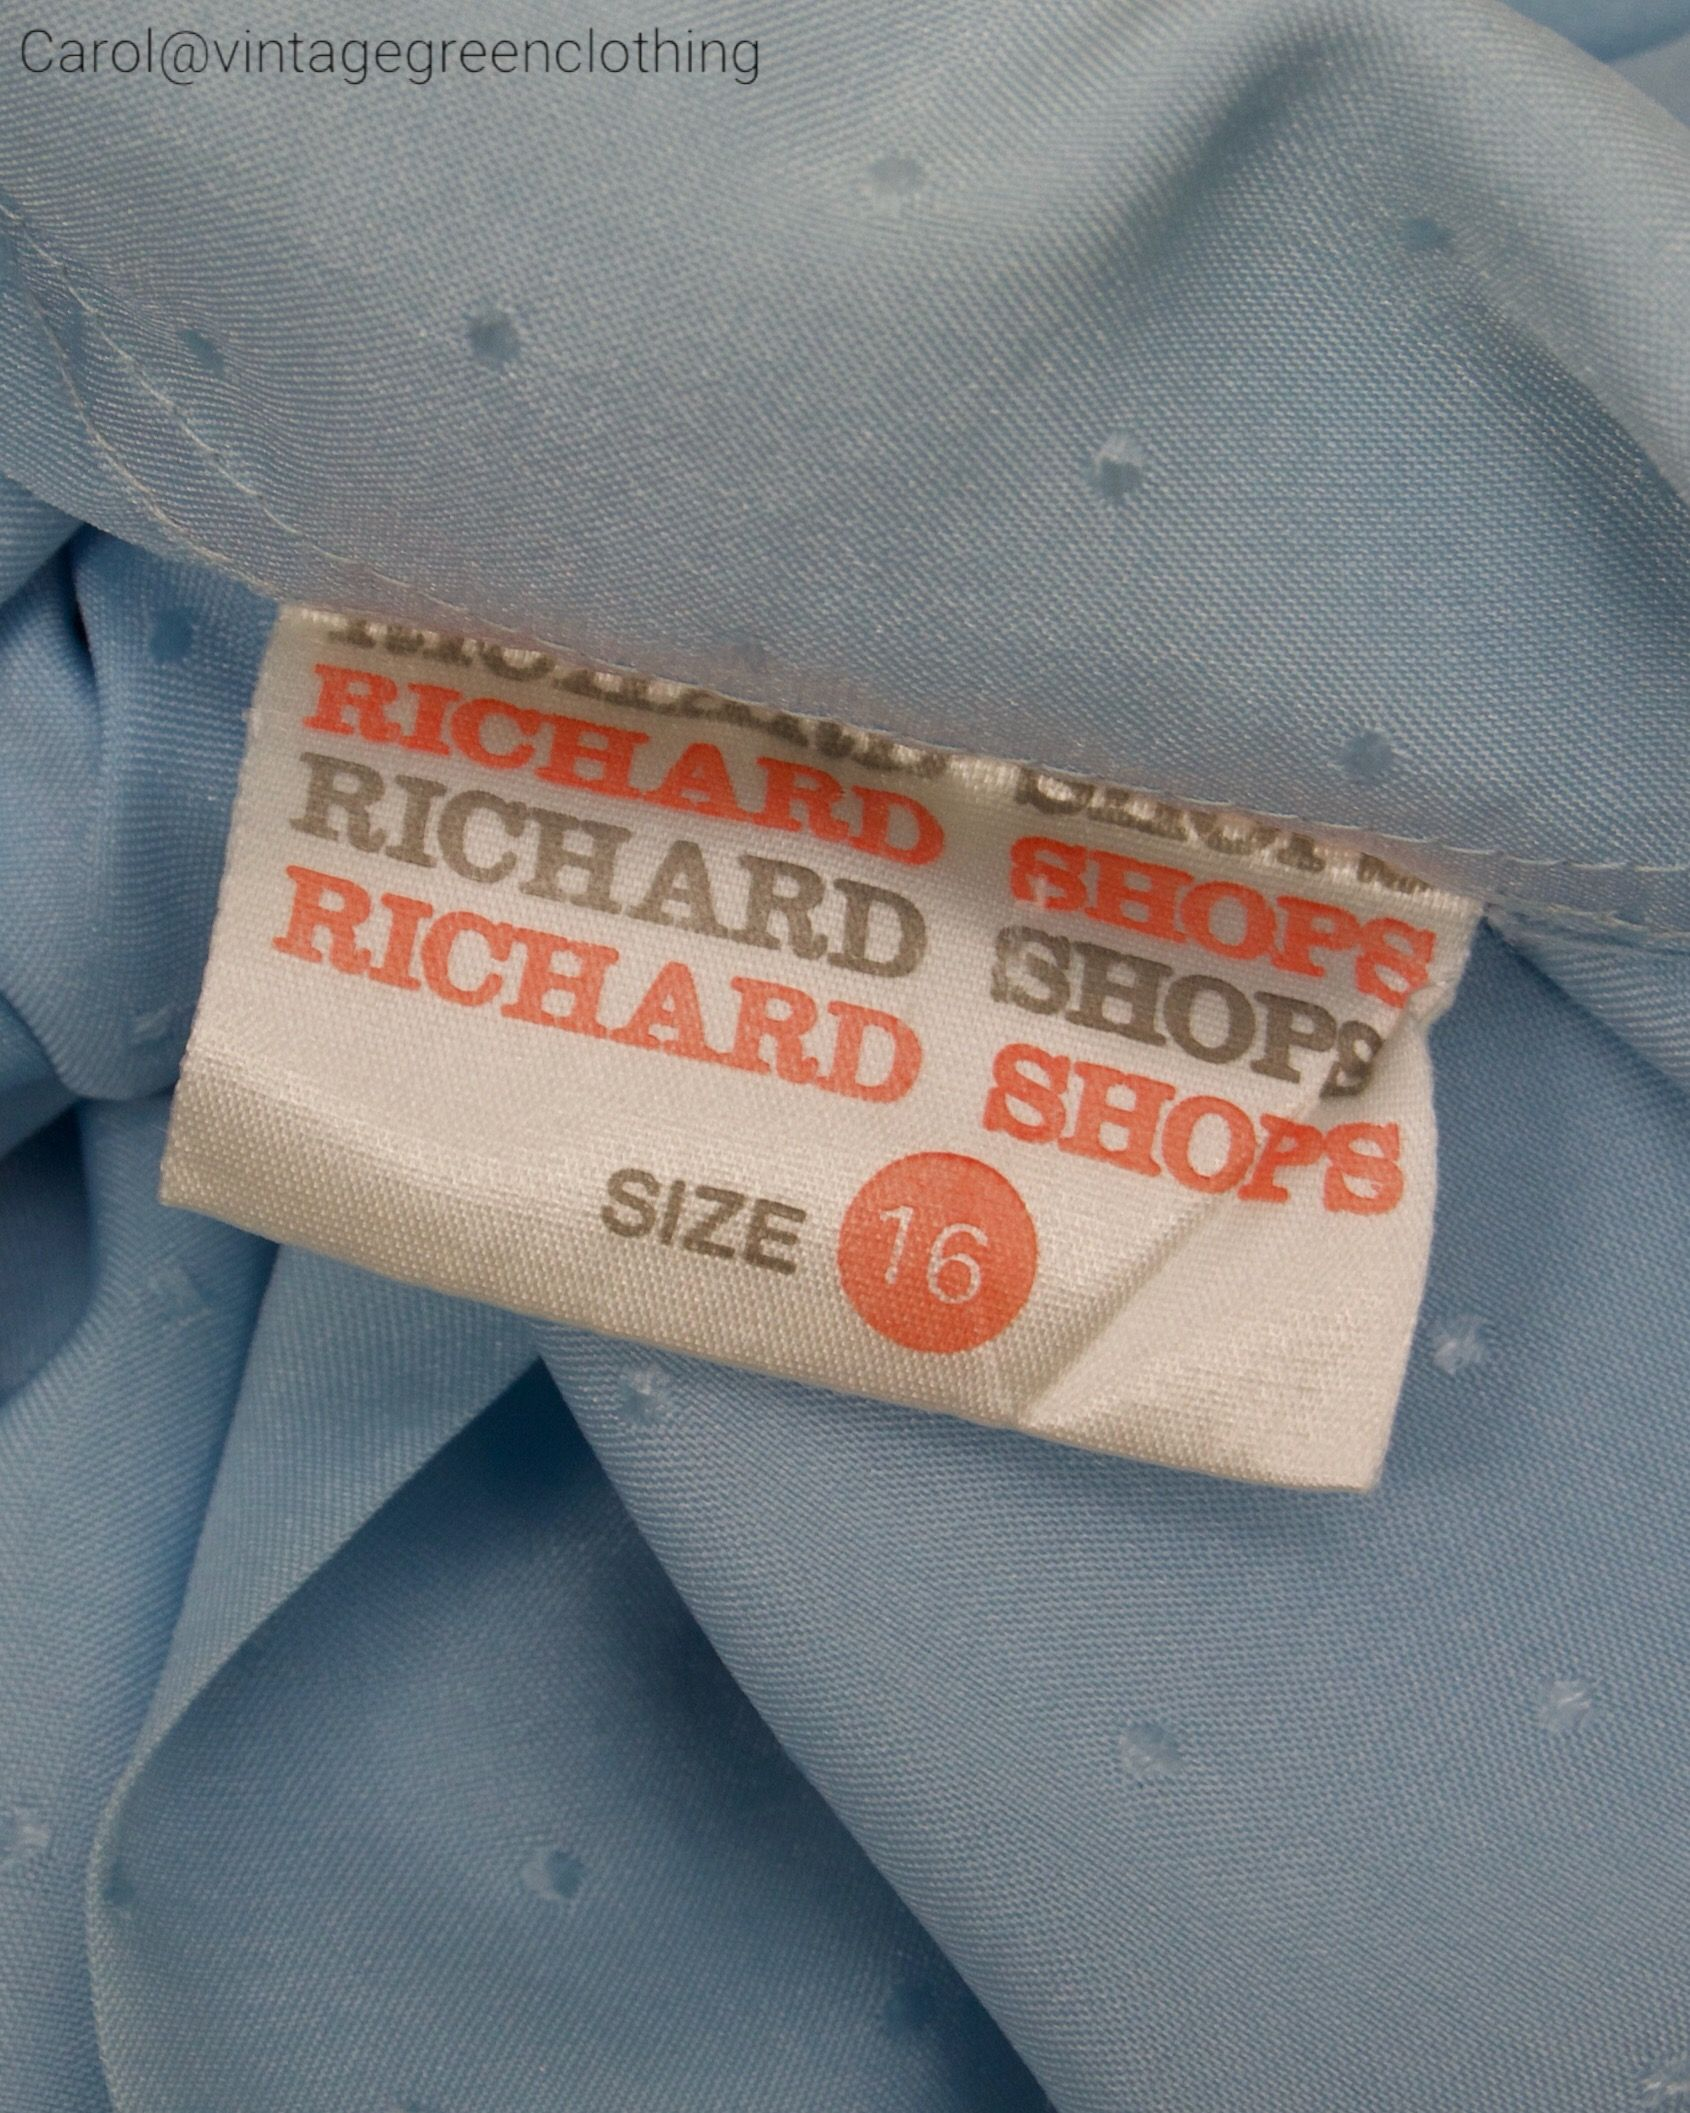 1970 S Garment Label From Uk Retailer Richard Shops Useful Aid To Dating Vintage Garments 70 S Brand 1970s Vintage Fashion Clothing Labels Fashion Typography